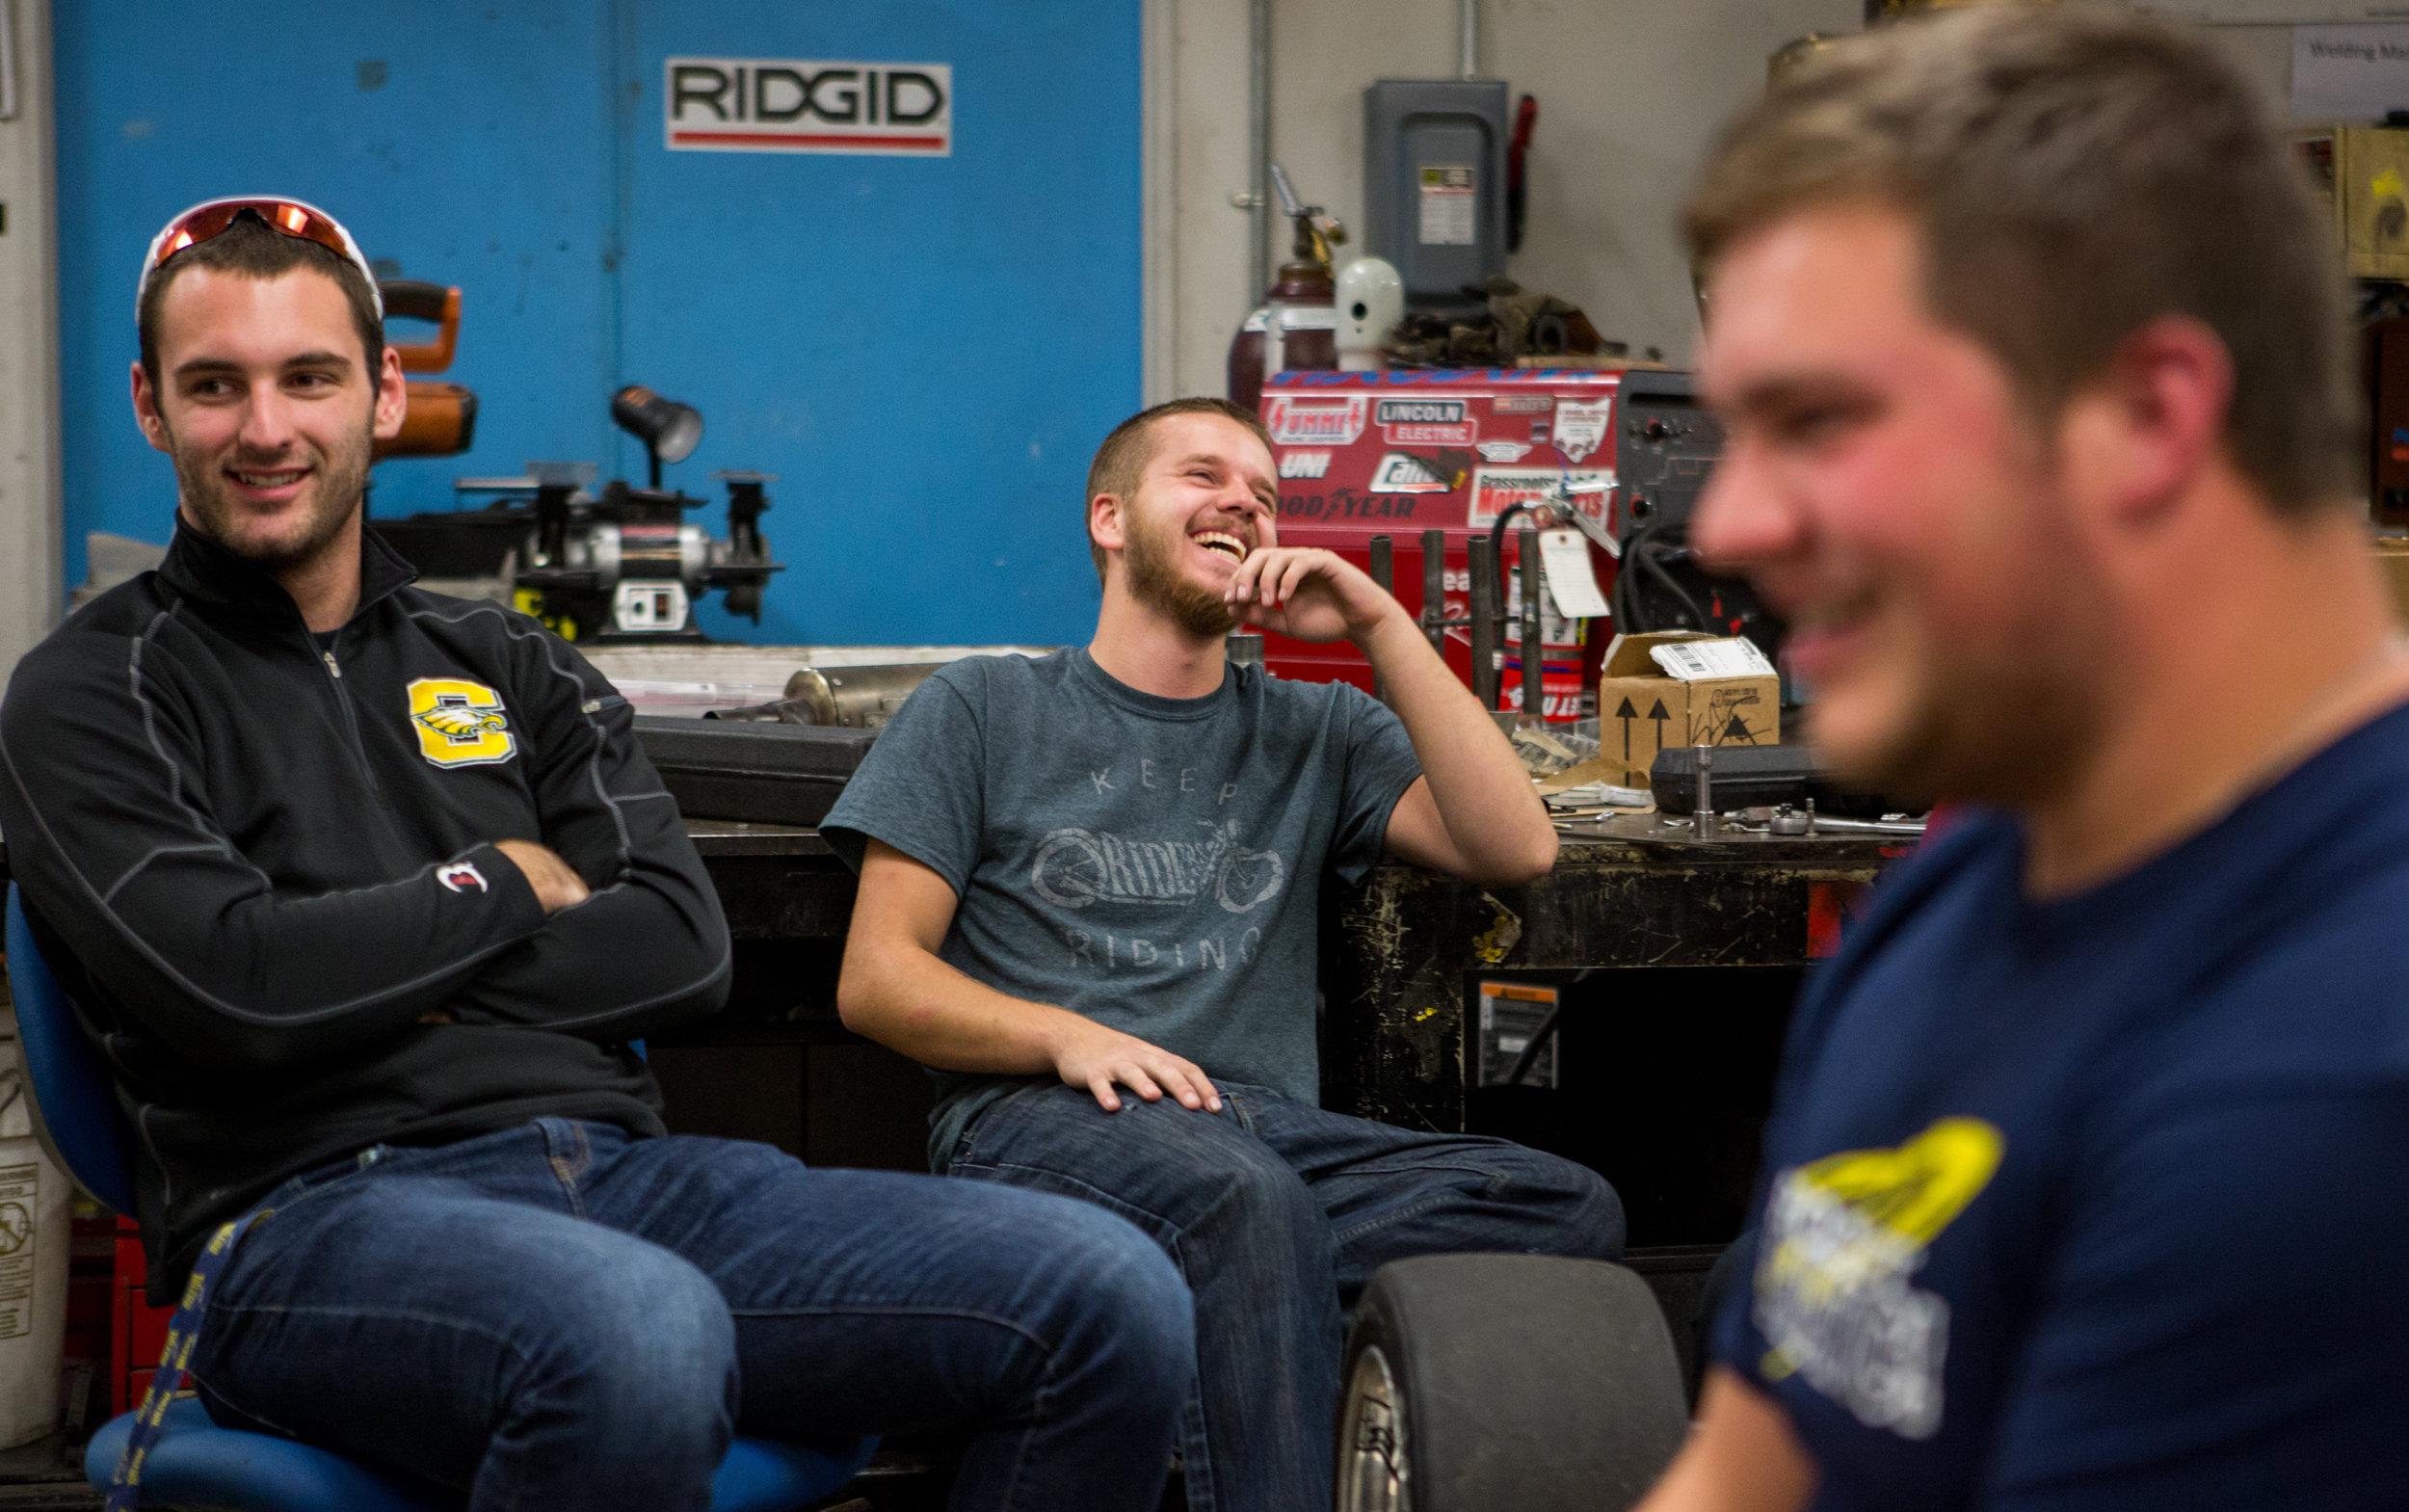 Jared Schaufele, left, and Colton Niese laugh with the rest of the team during one of their weekly planning meetings in the Formula SAE team lab.